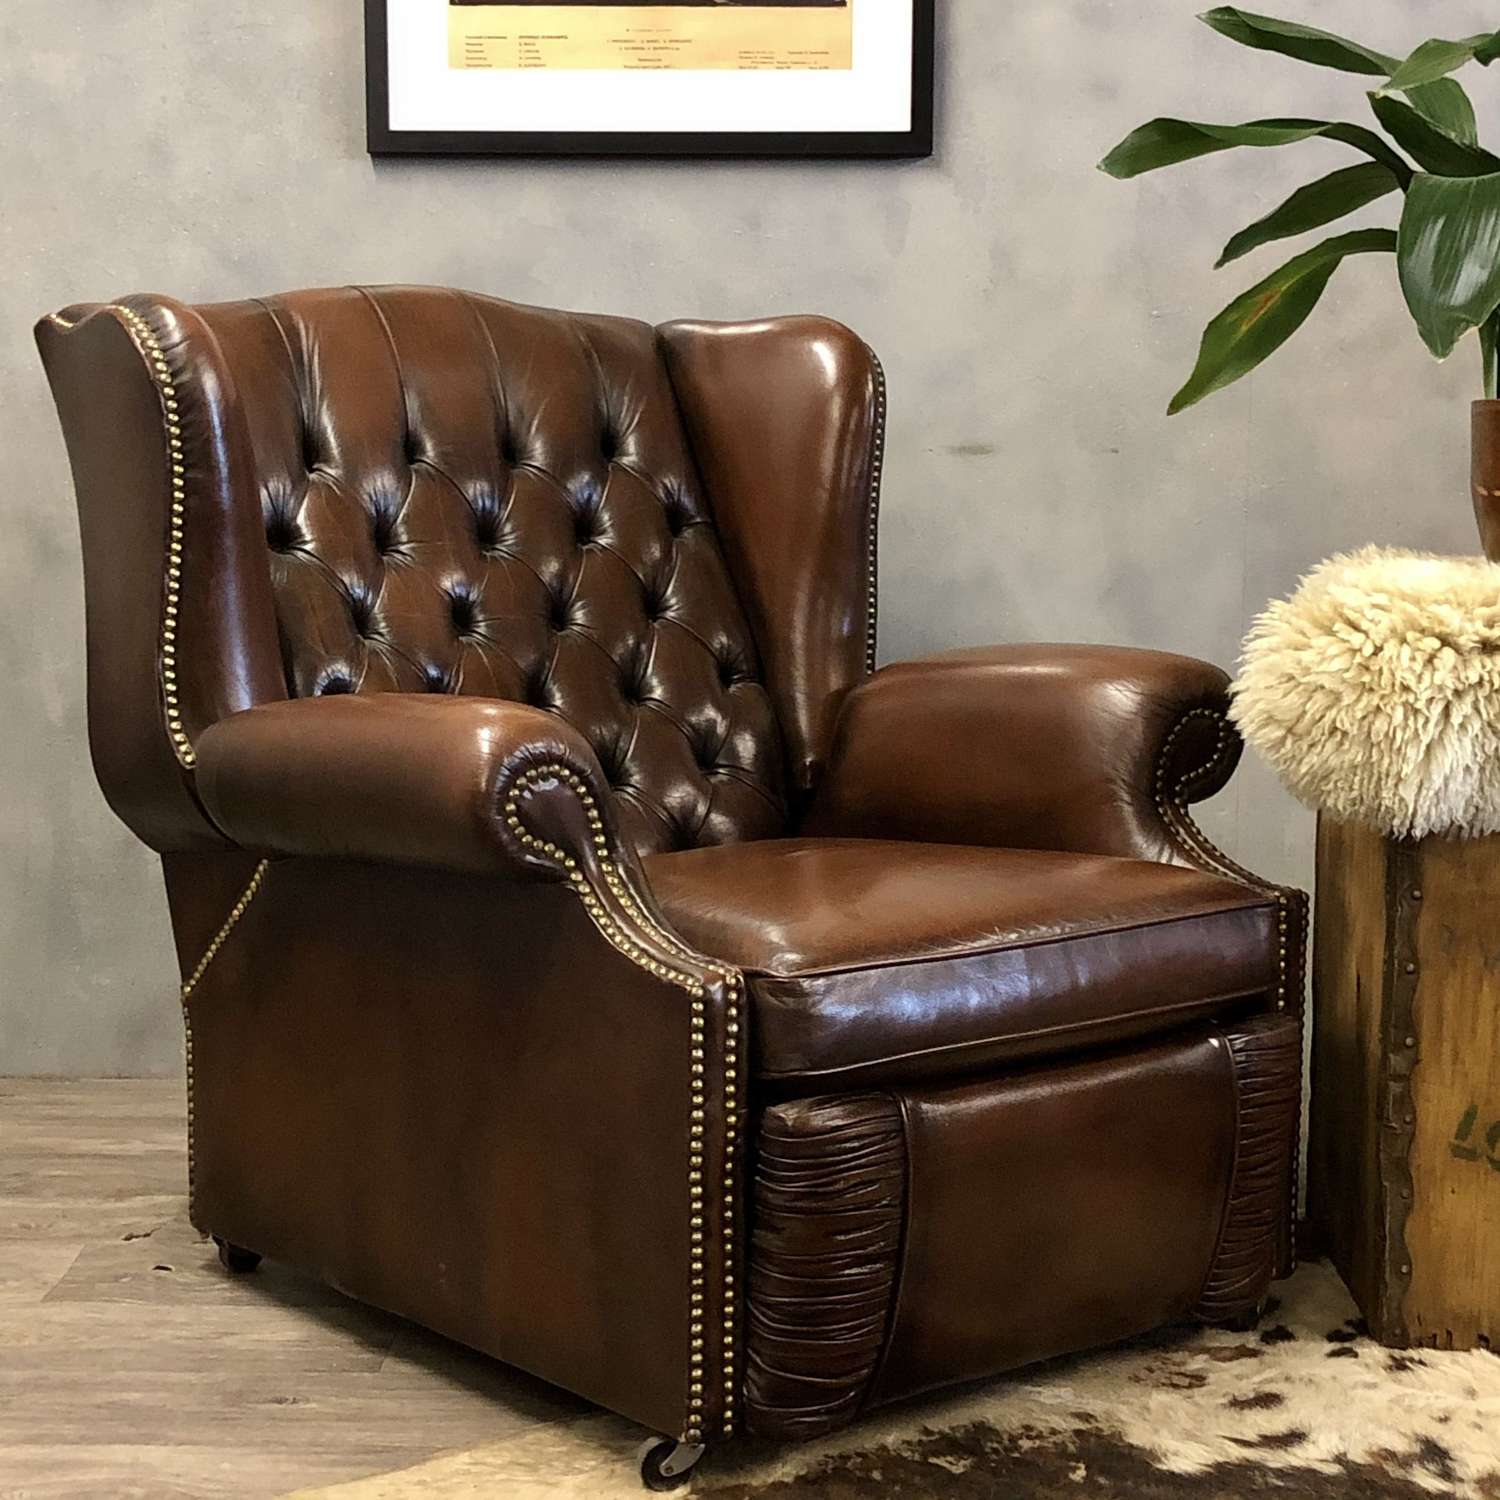 Chesterfield reclining leather vintage